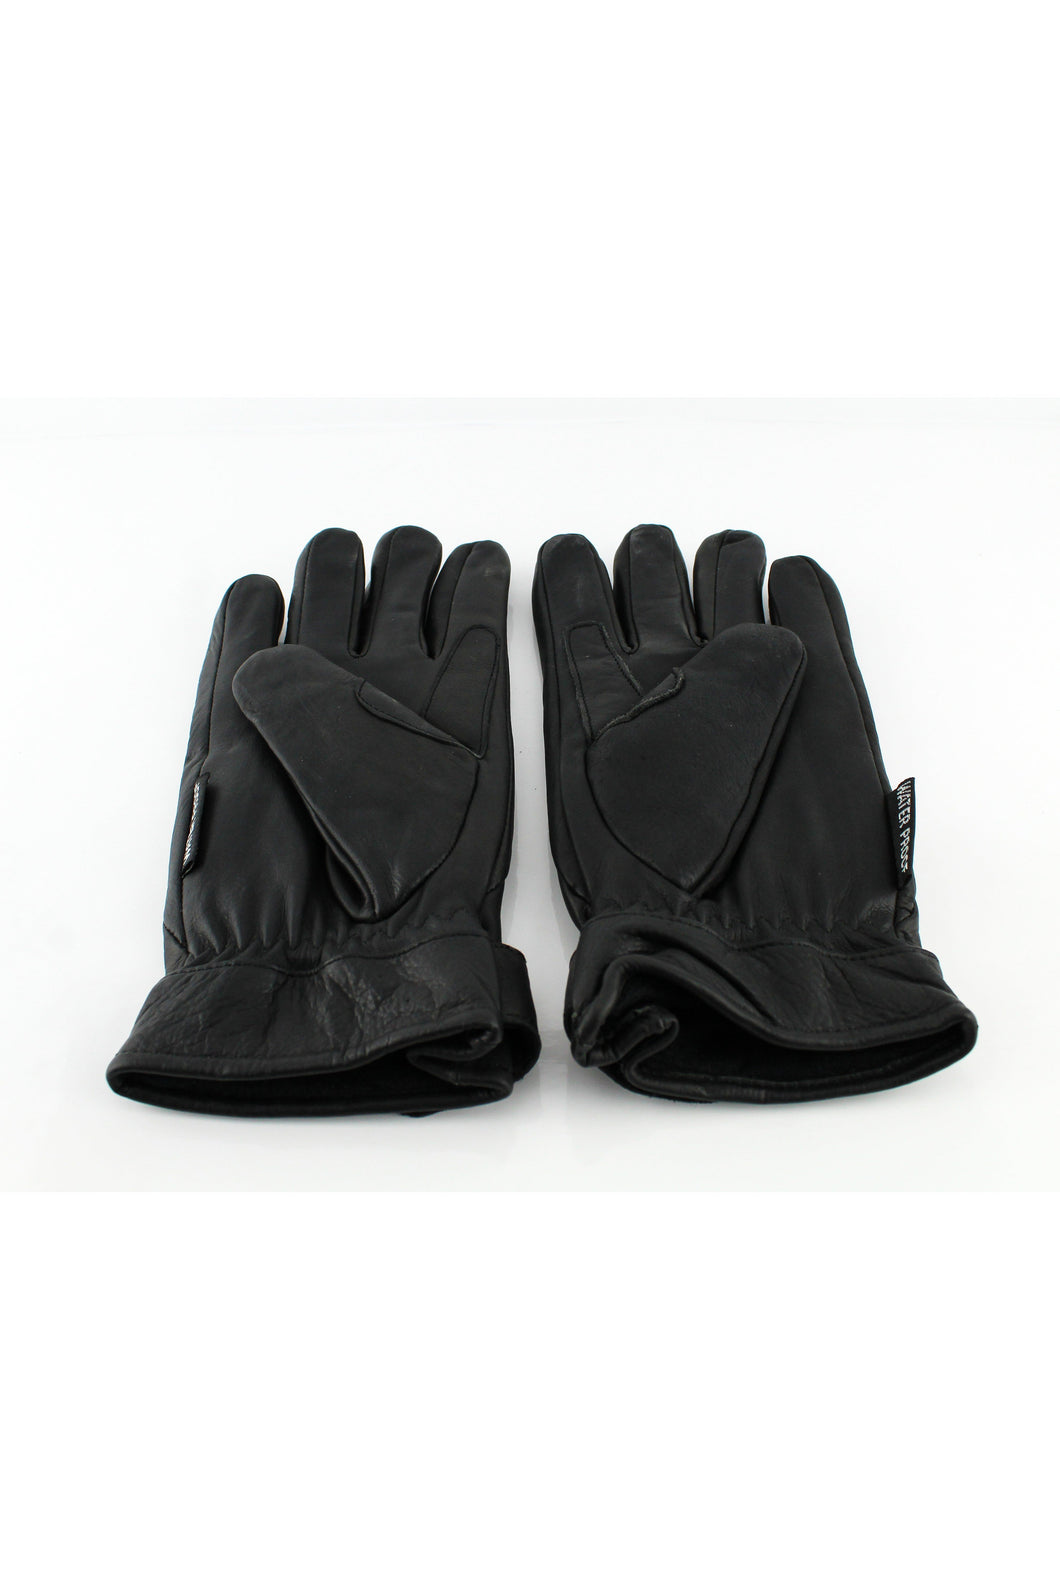 Leather Gloves - Leather Gloves Black